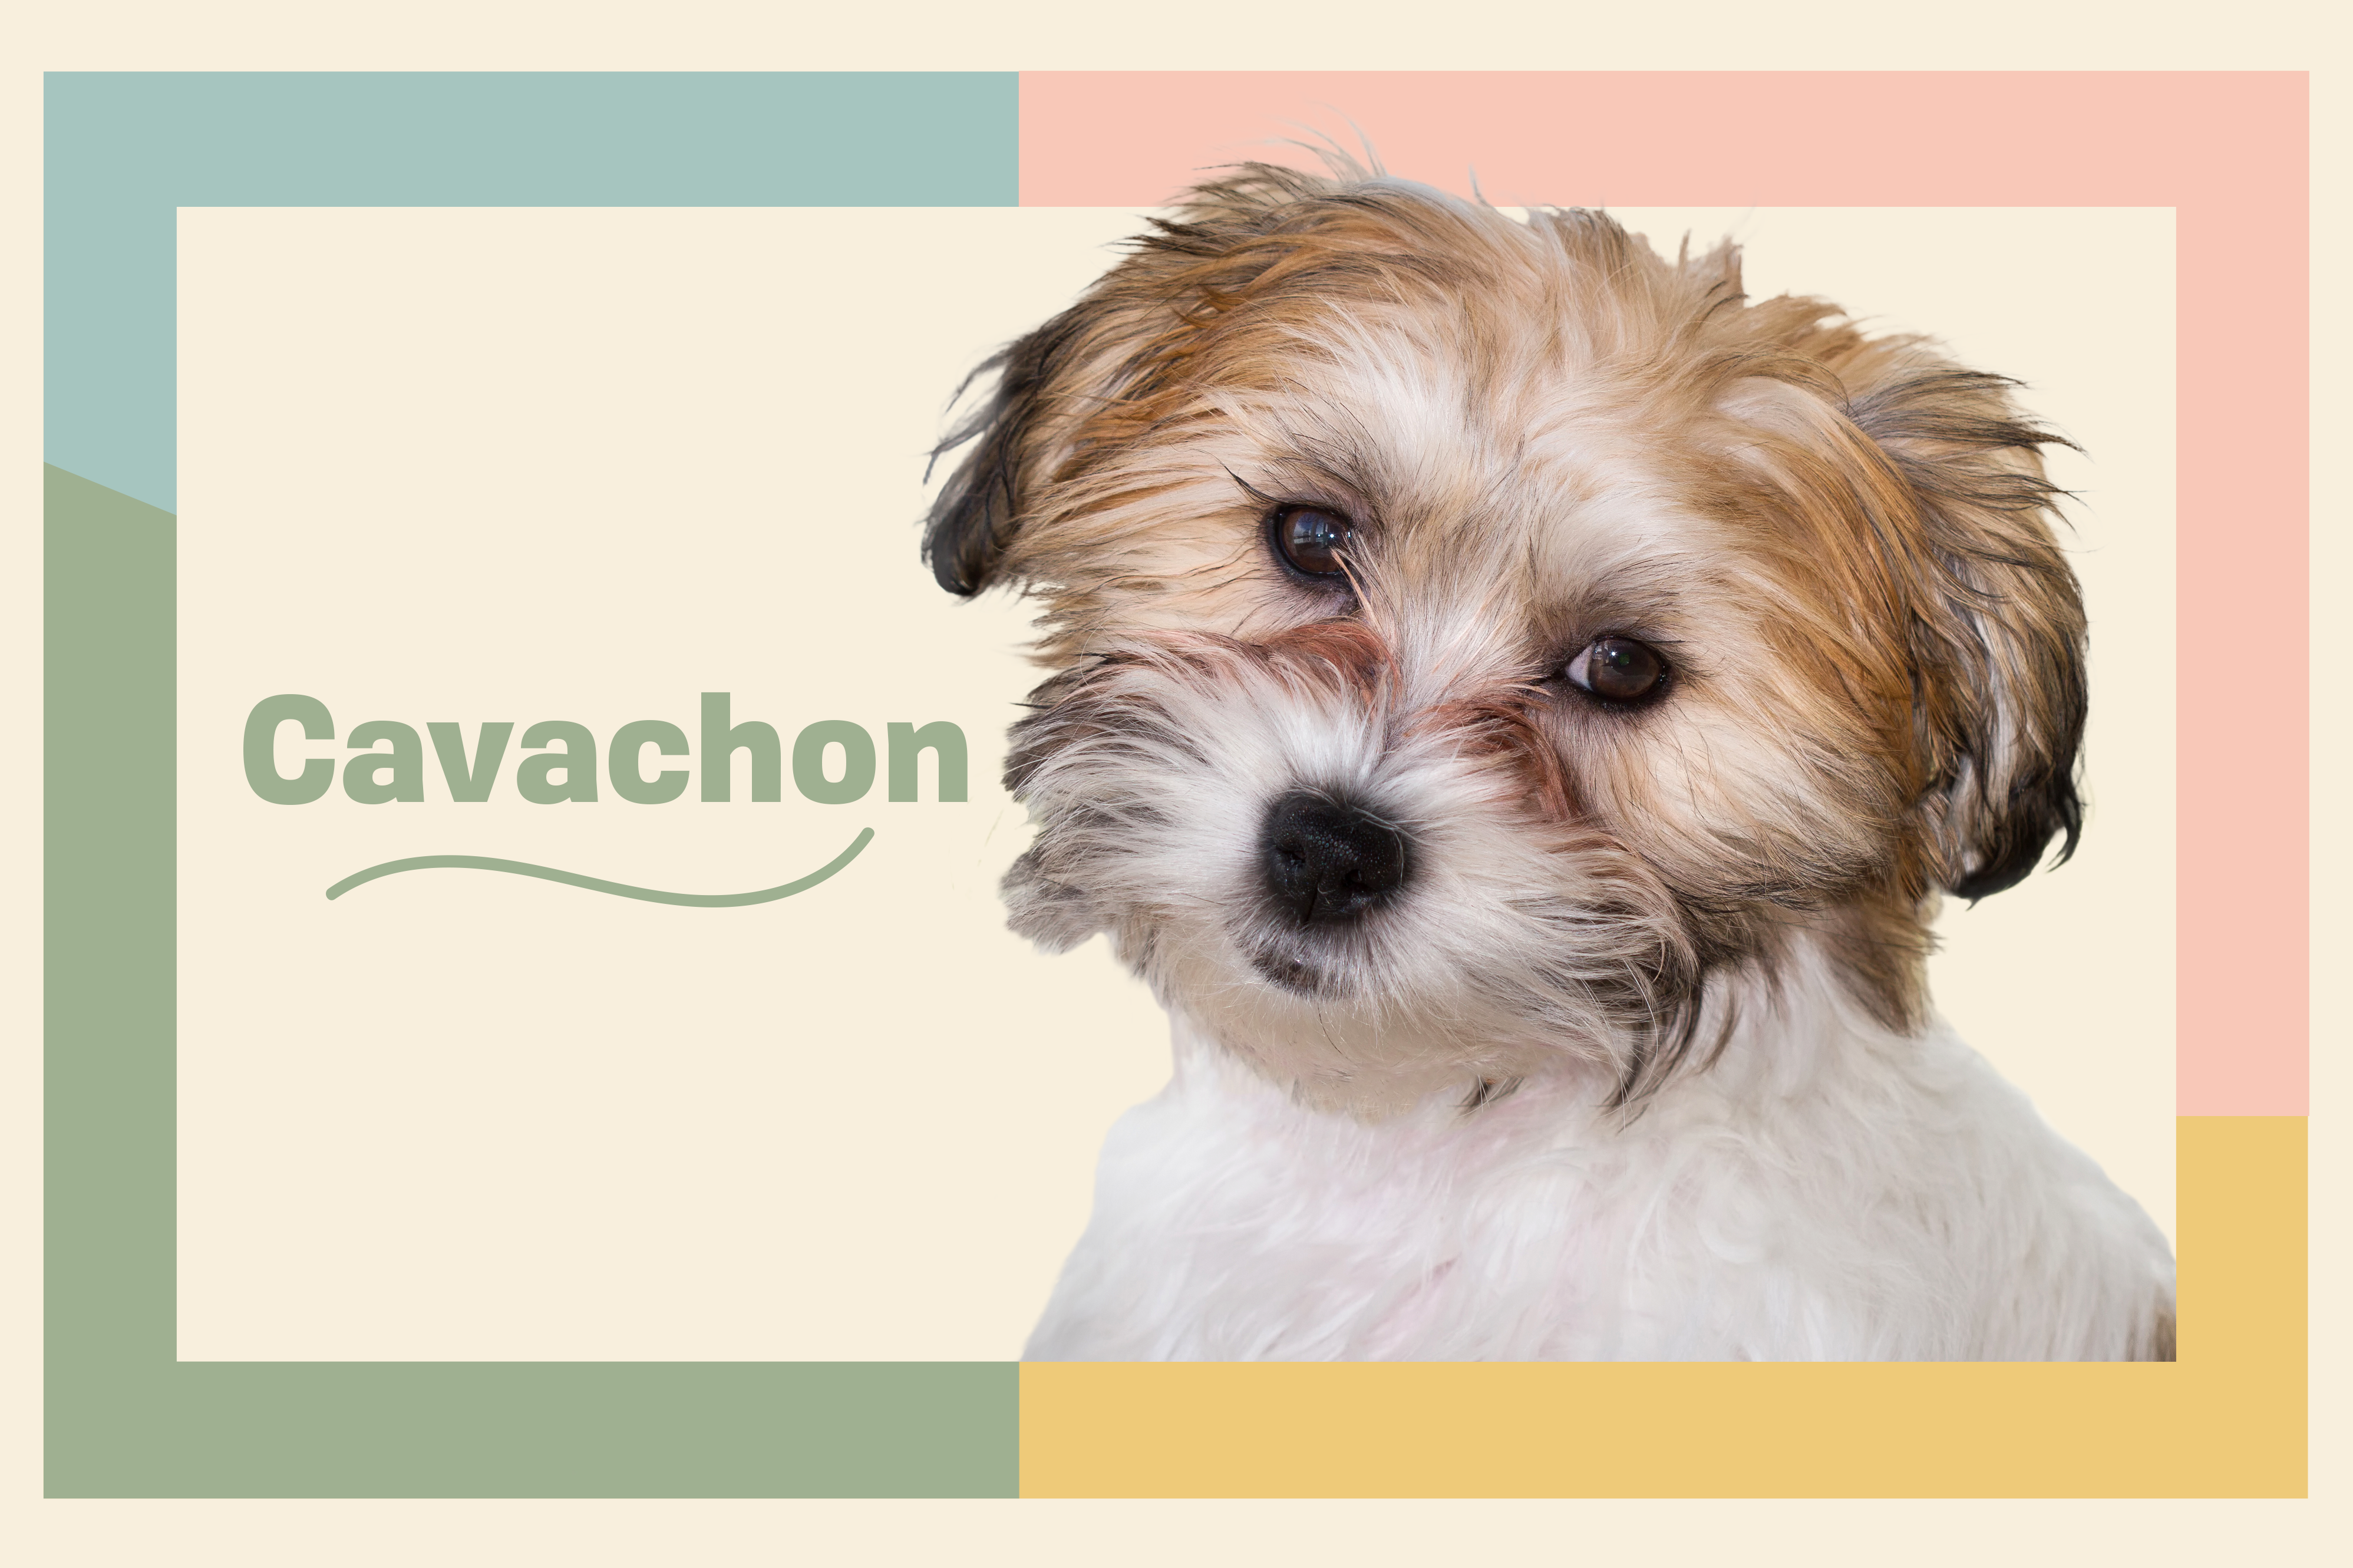 image of the Cavachon